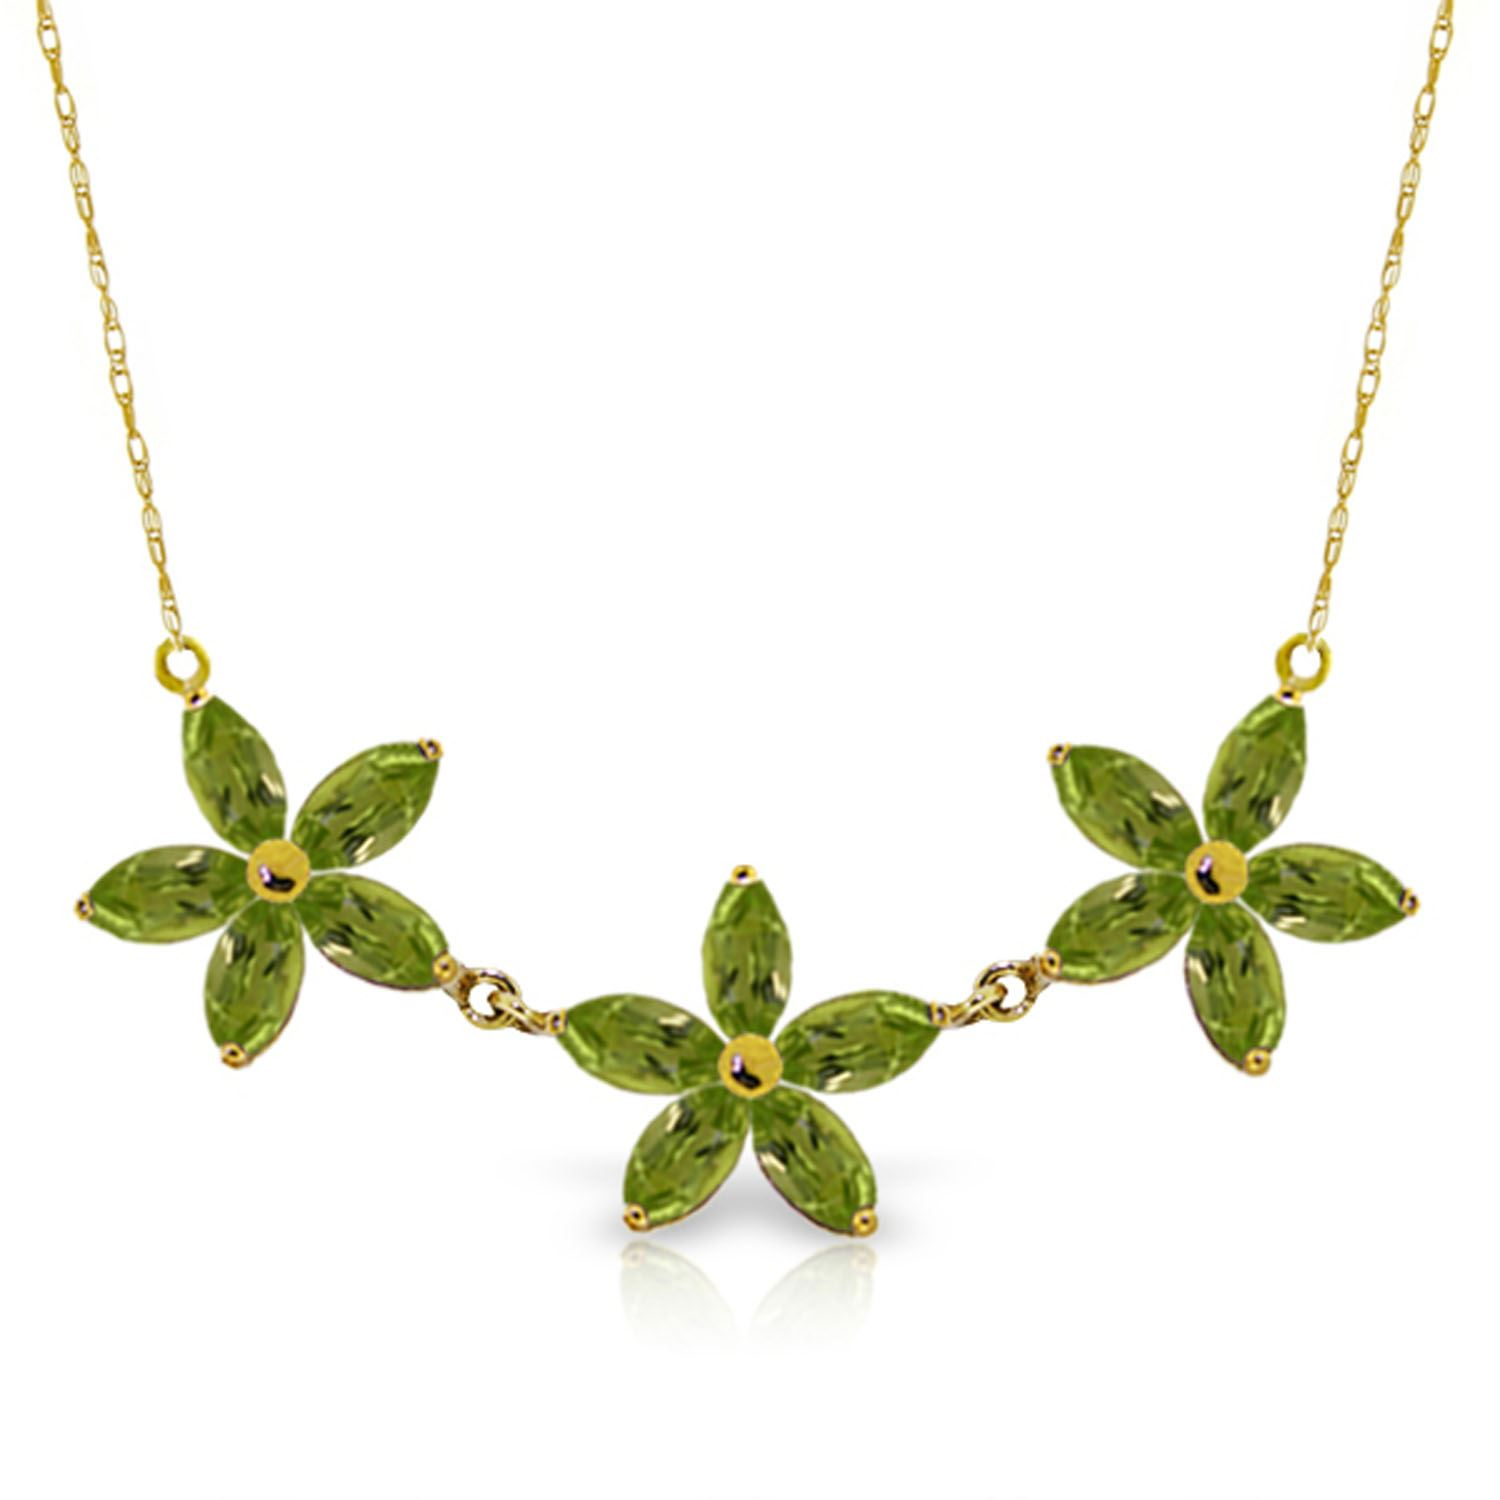 ALARRI 14K Solid Rose Gold Necklace w// Natural Peridot with 18 Inch Chain Length